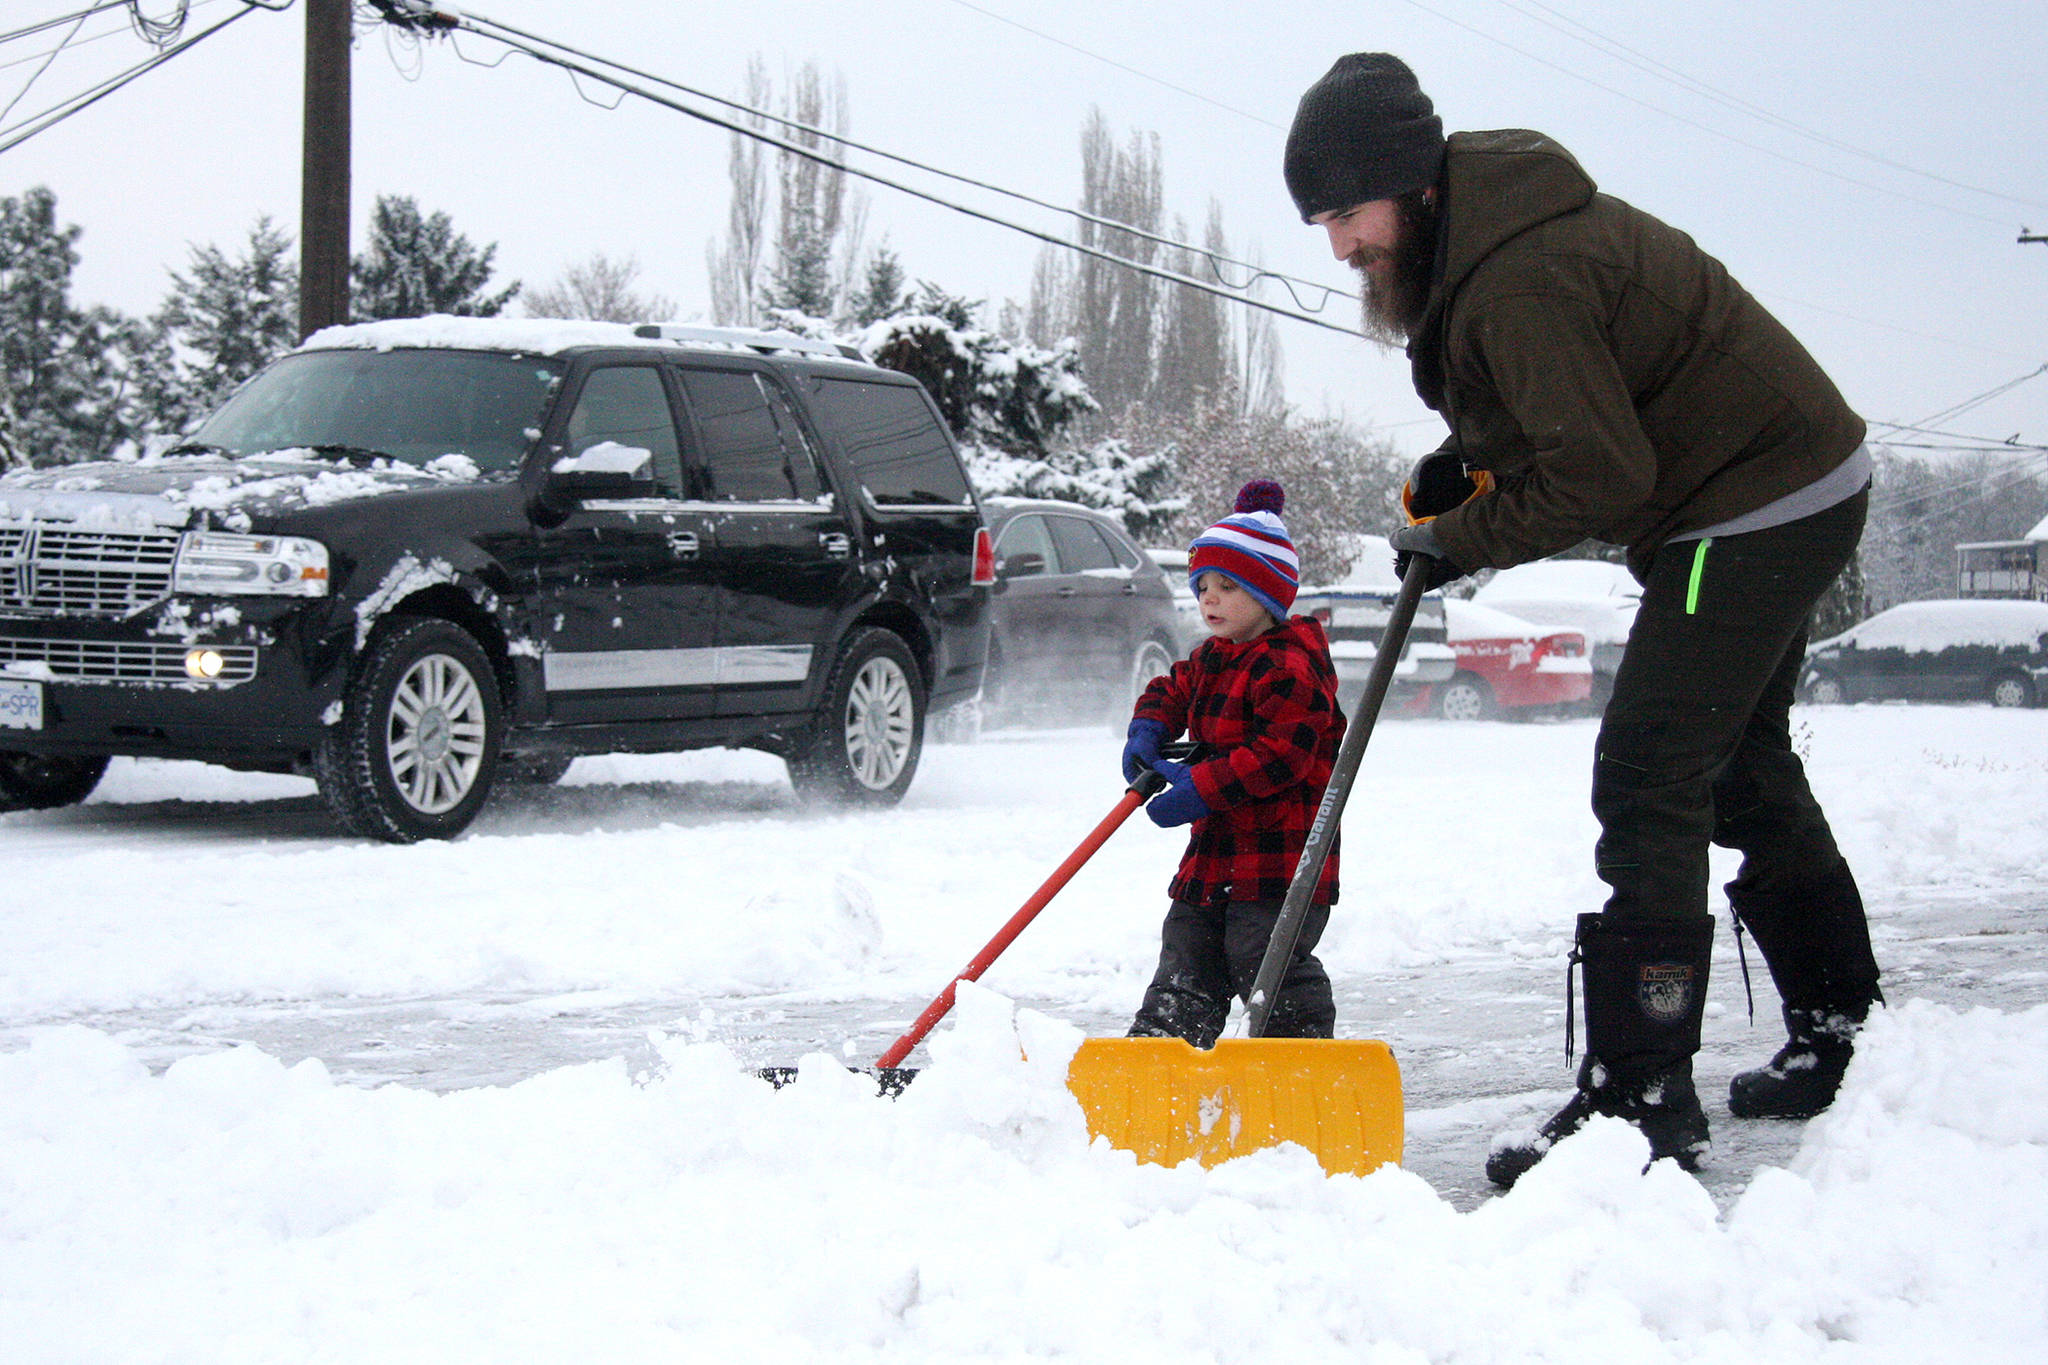 Snow shovel woes: How to avoid injuries in the day-to-day of winter